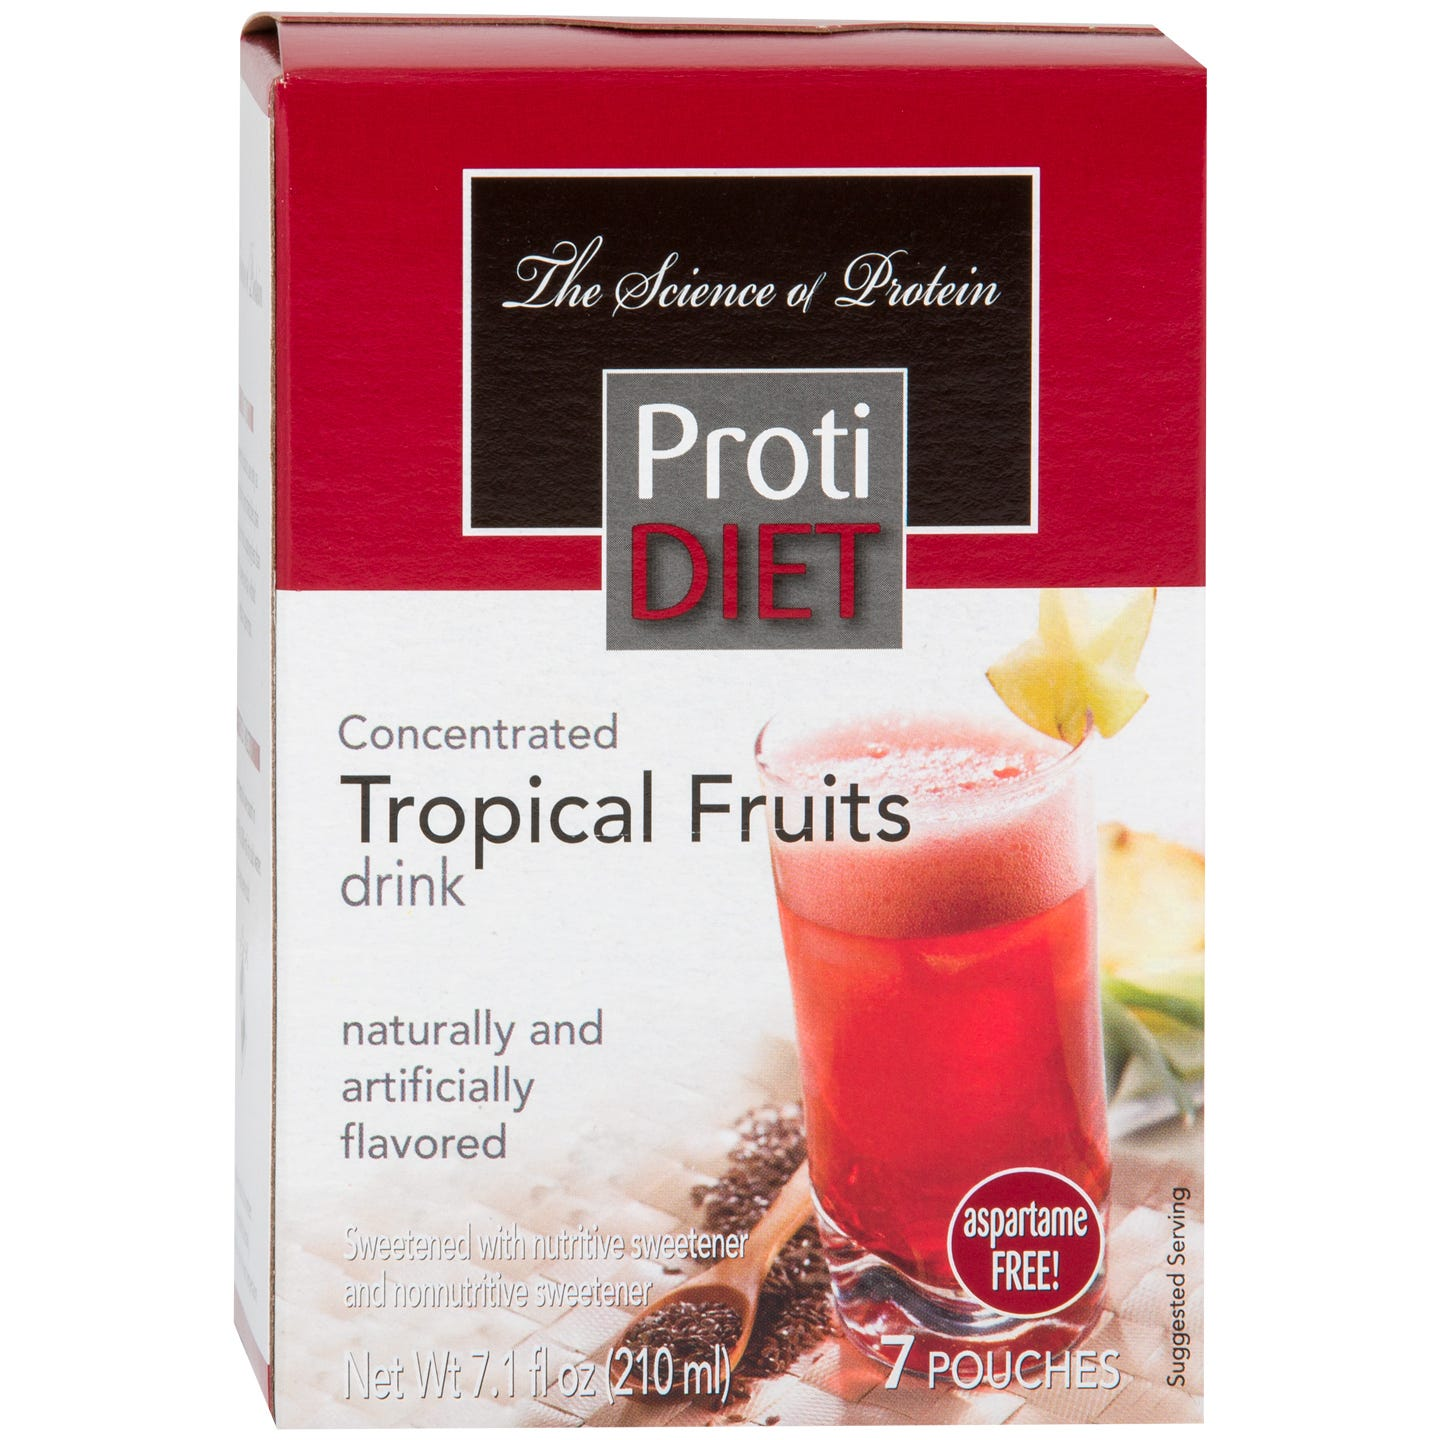 Protein Fruit Drink Concentrate Tropical Fruits (7 ct) – ProtiDiet